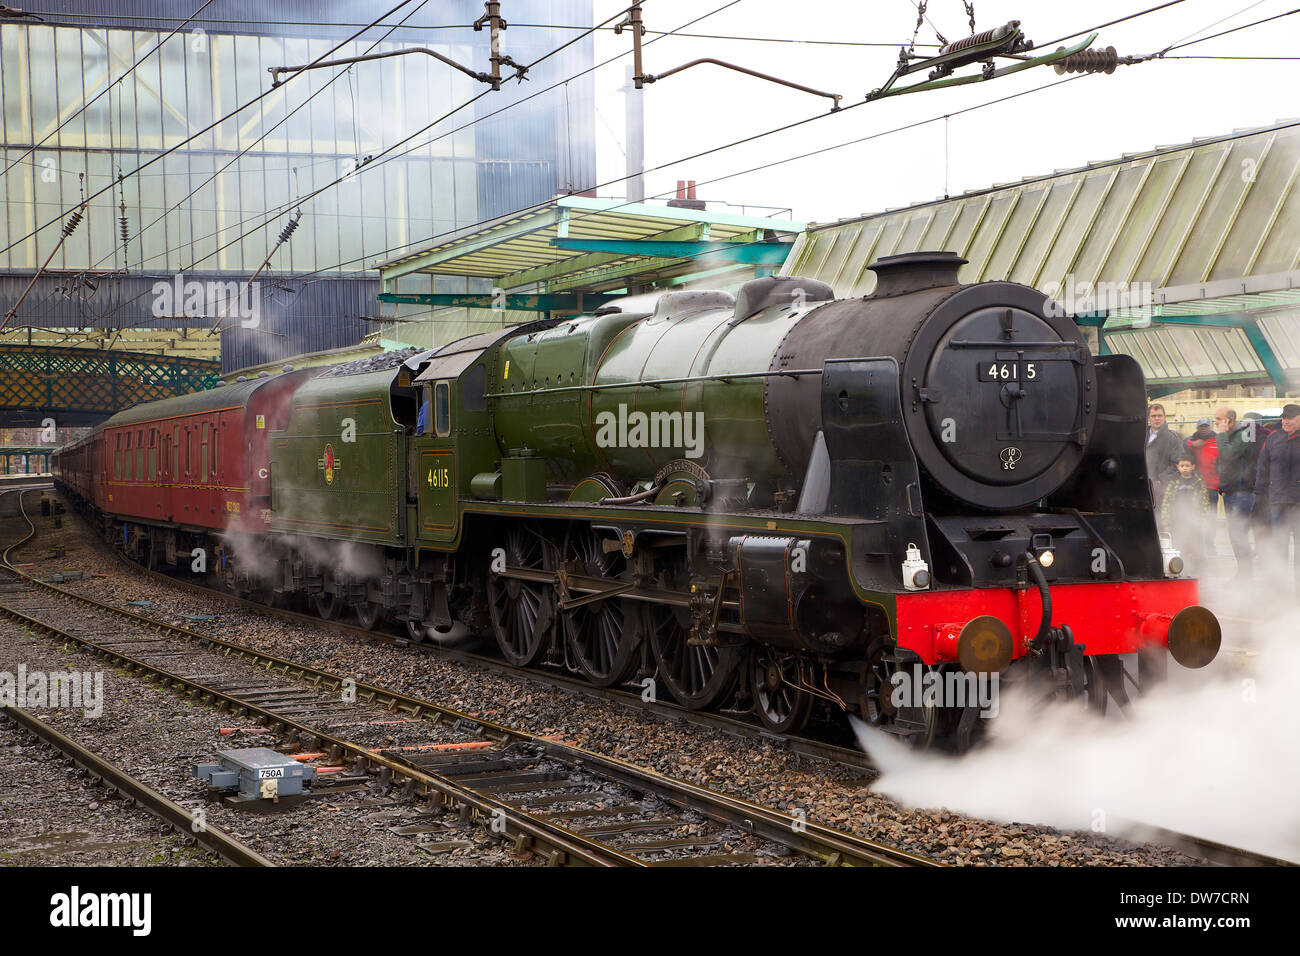 Steam train 46115 Scots Guardsman at Carlisle Railway Station,Carlisle,Cumbria,England,United Kingdom,Great Britain - Stock Image